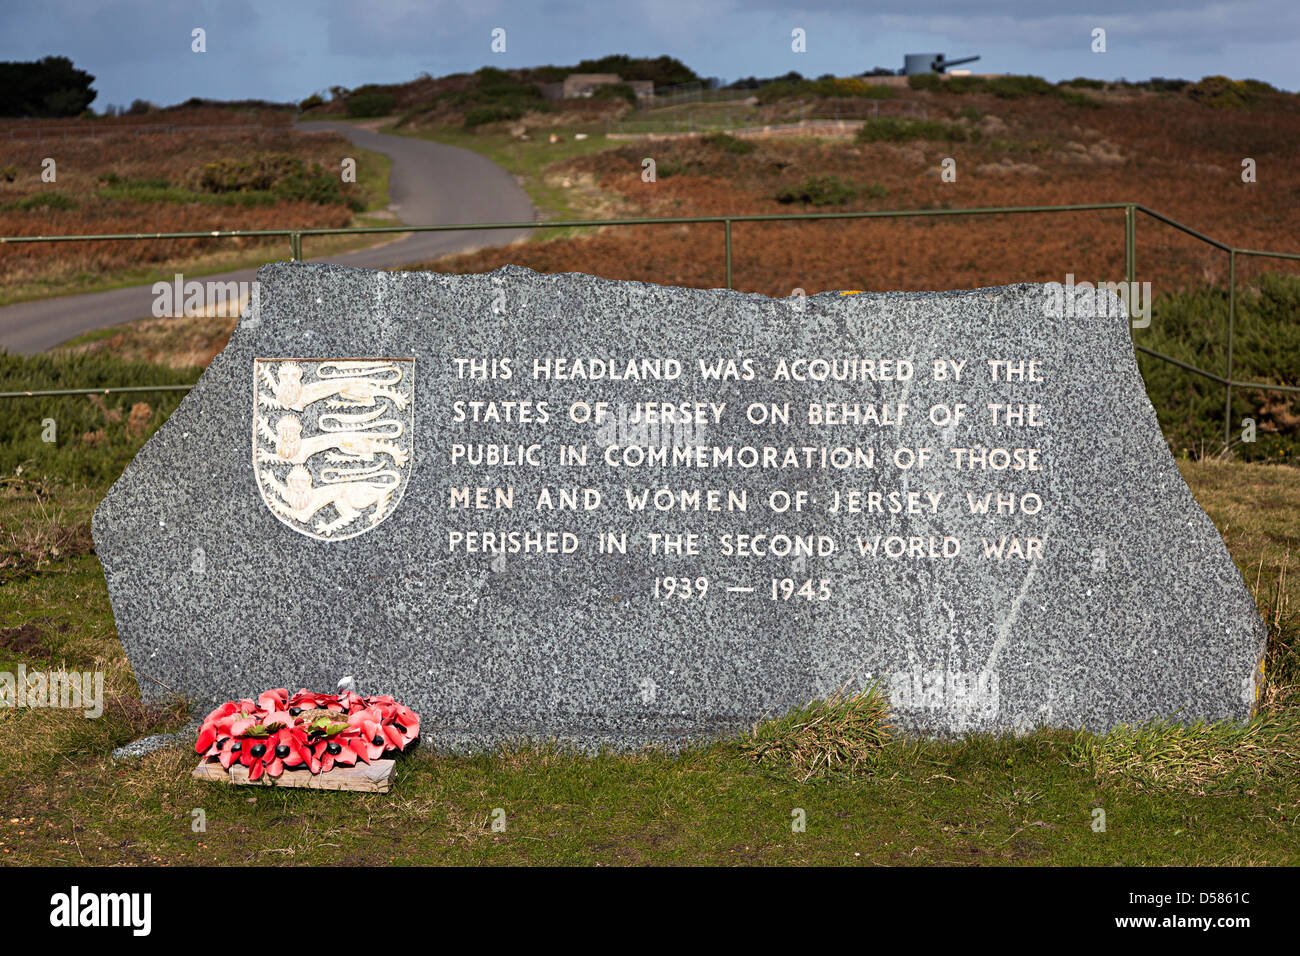 Memorial stone on Noir Mont headland commemorating those who died in the Second World War Jersey Channel Islands - Stock Image